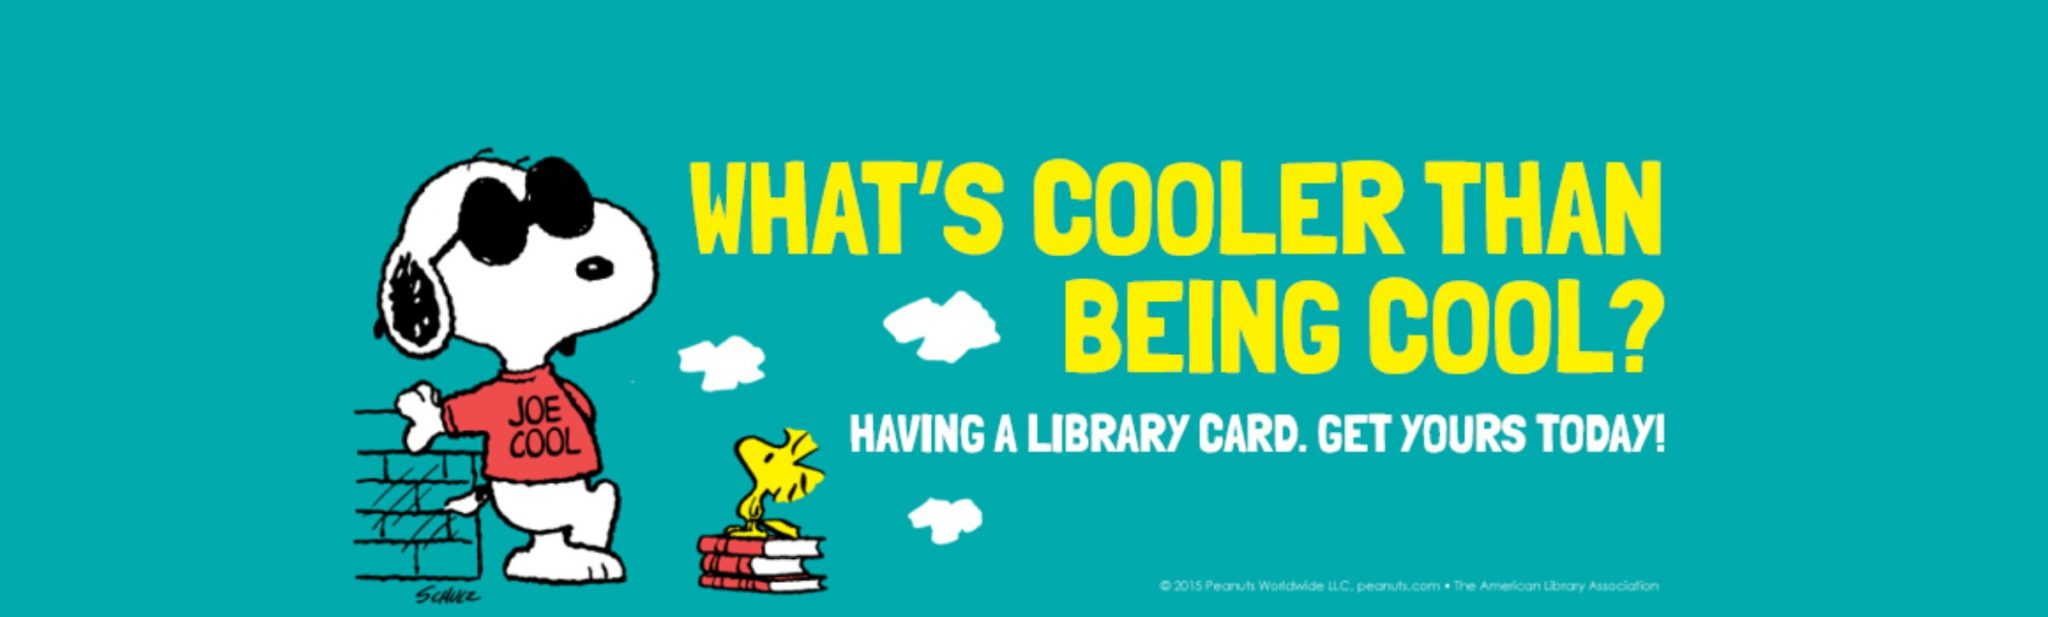 09-30-16 Library Card Sign Up Slider